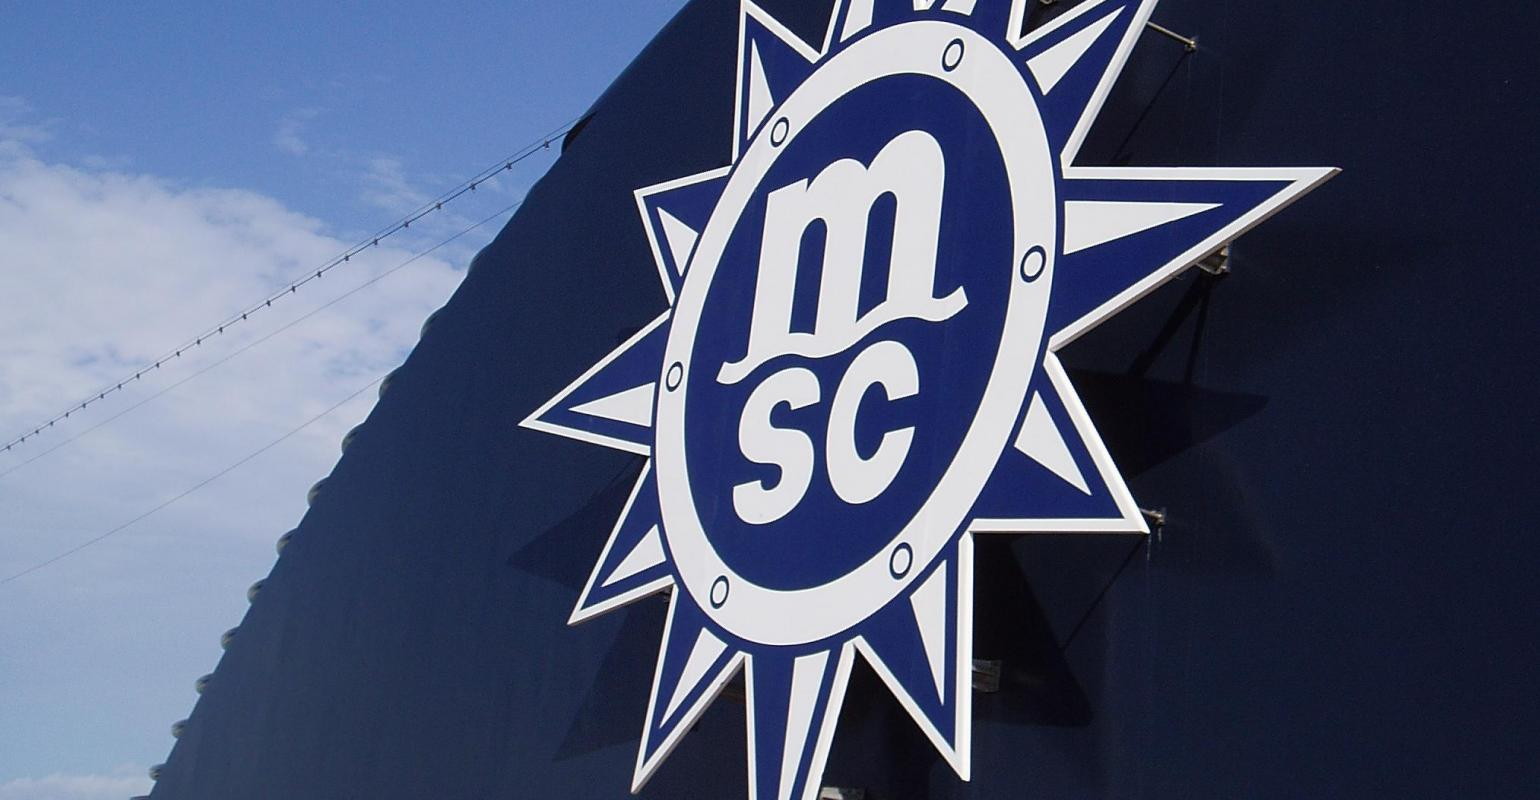 MSC Logo on the funnel of a ship